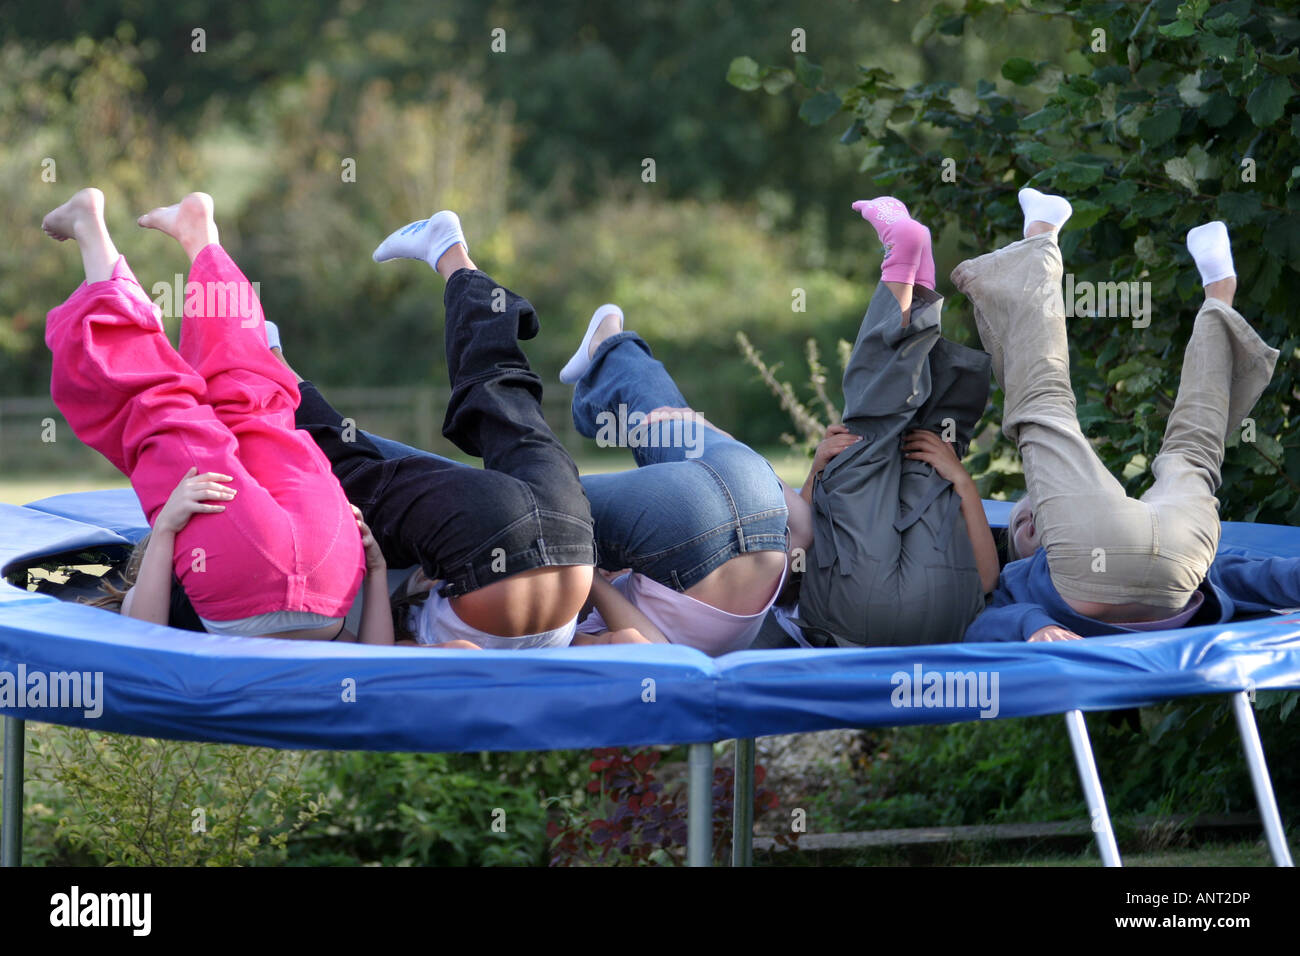 young-girls-bums